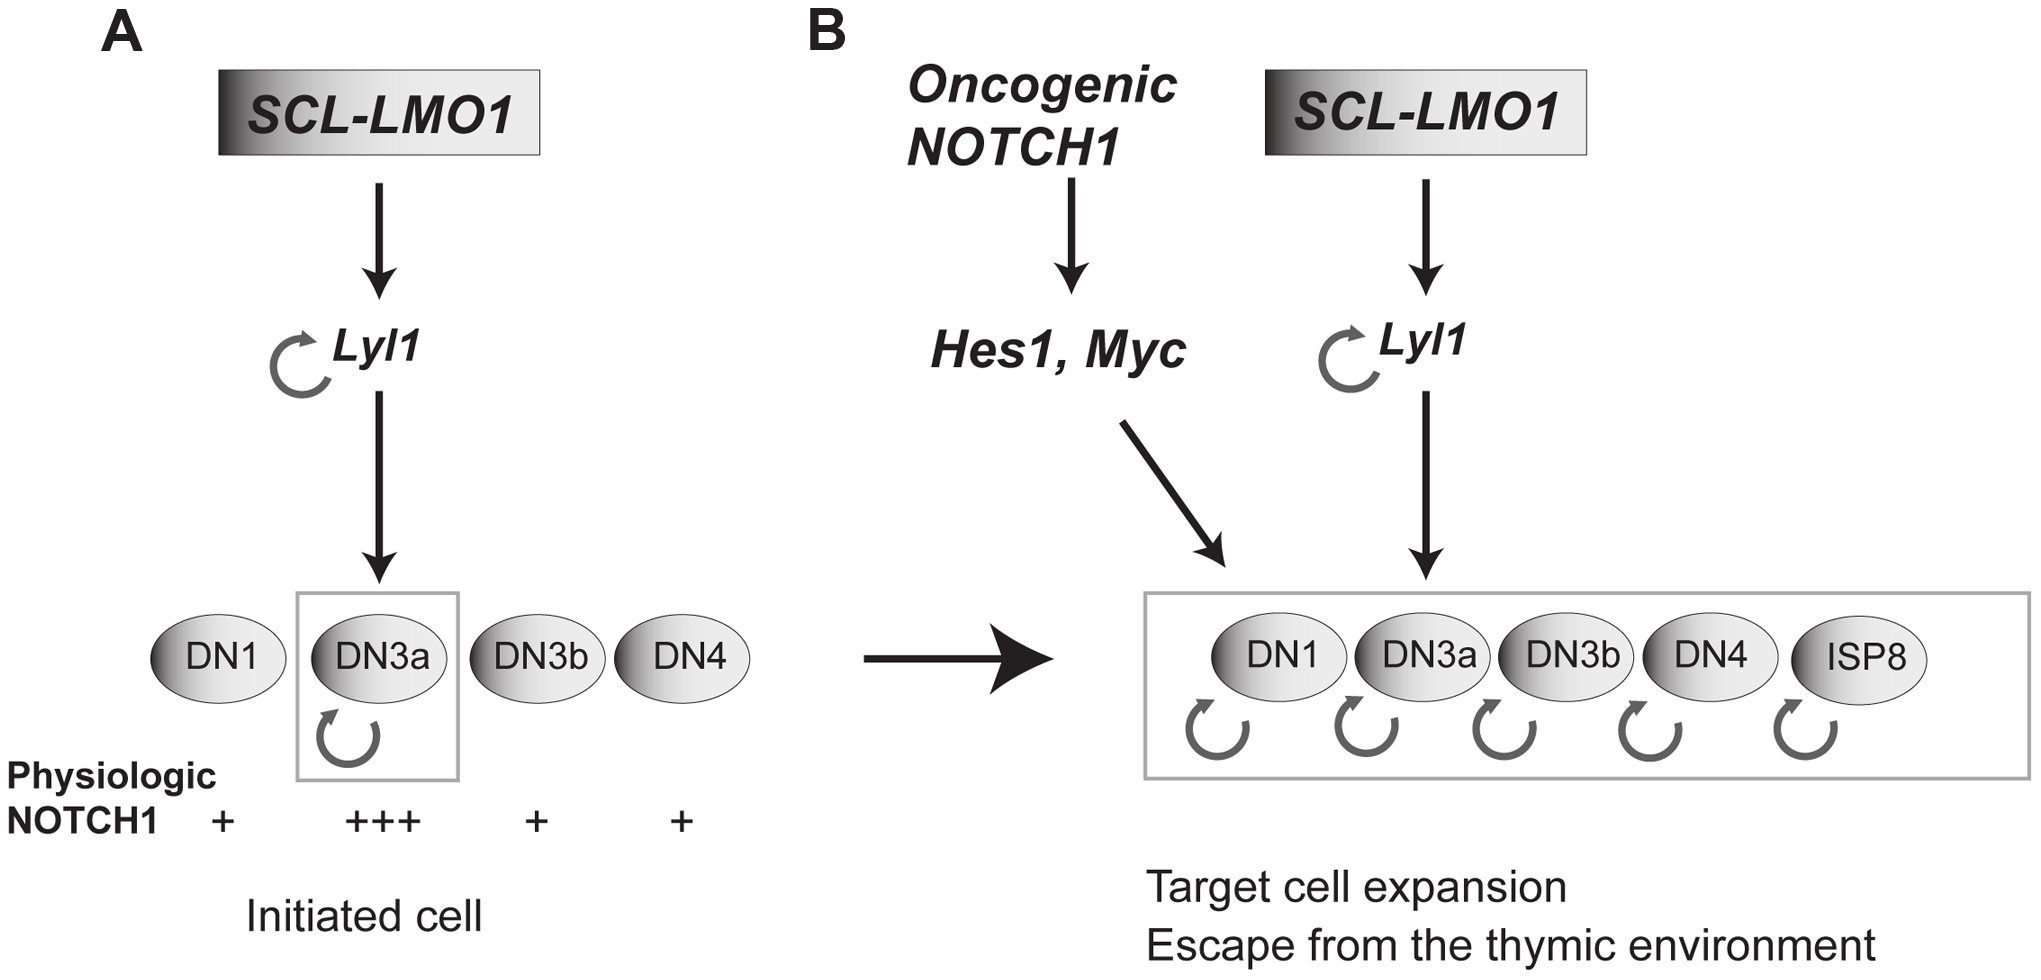 Model of the collaboration between the SCL, LMO1 and <i>Notch1</i> oncogenes.